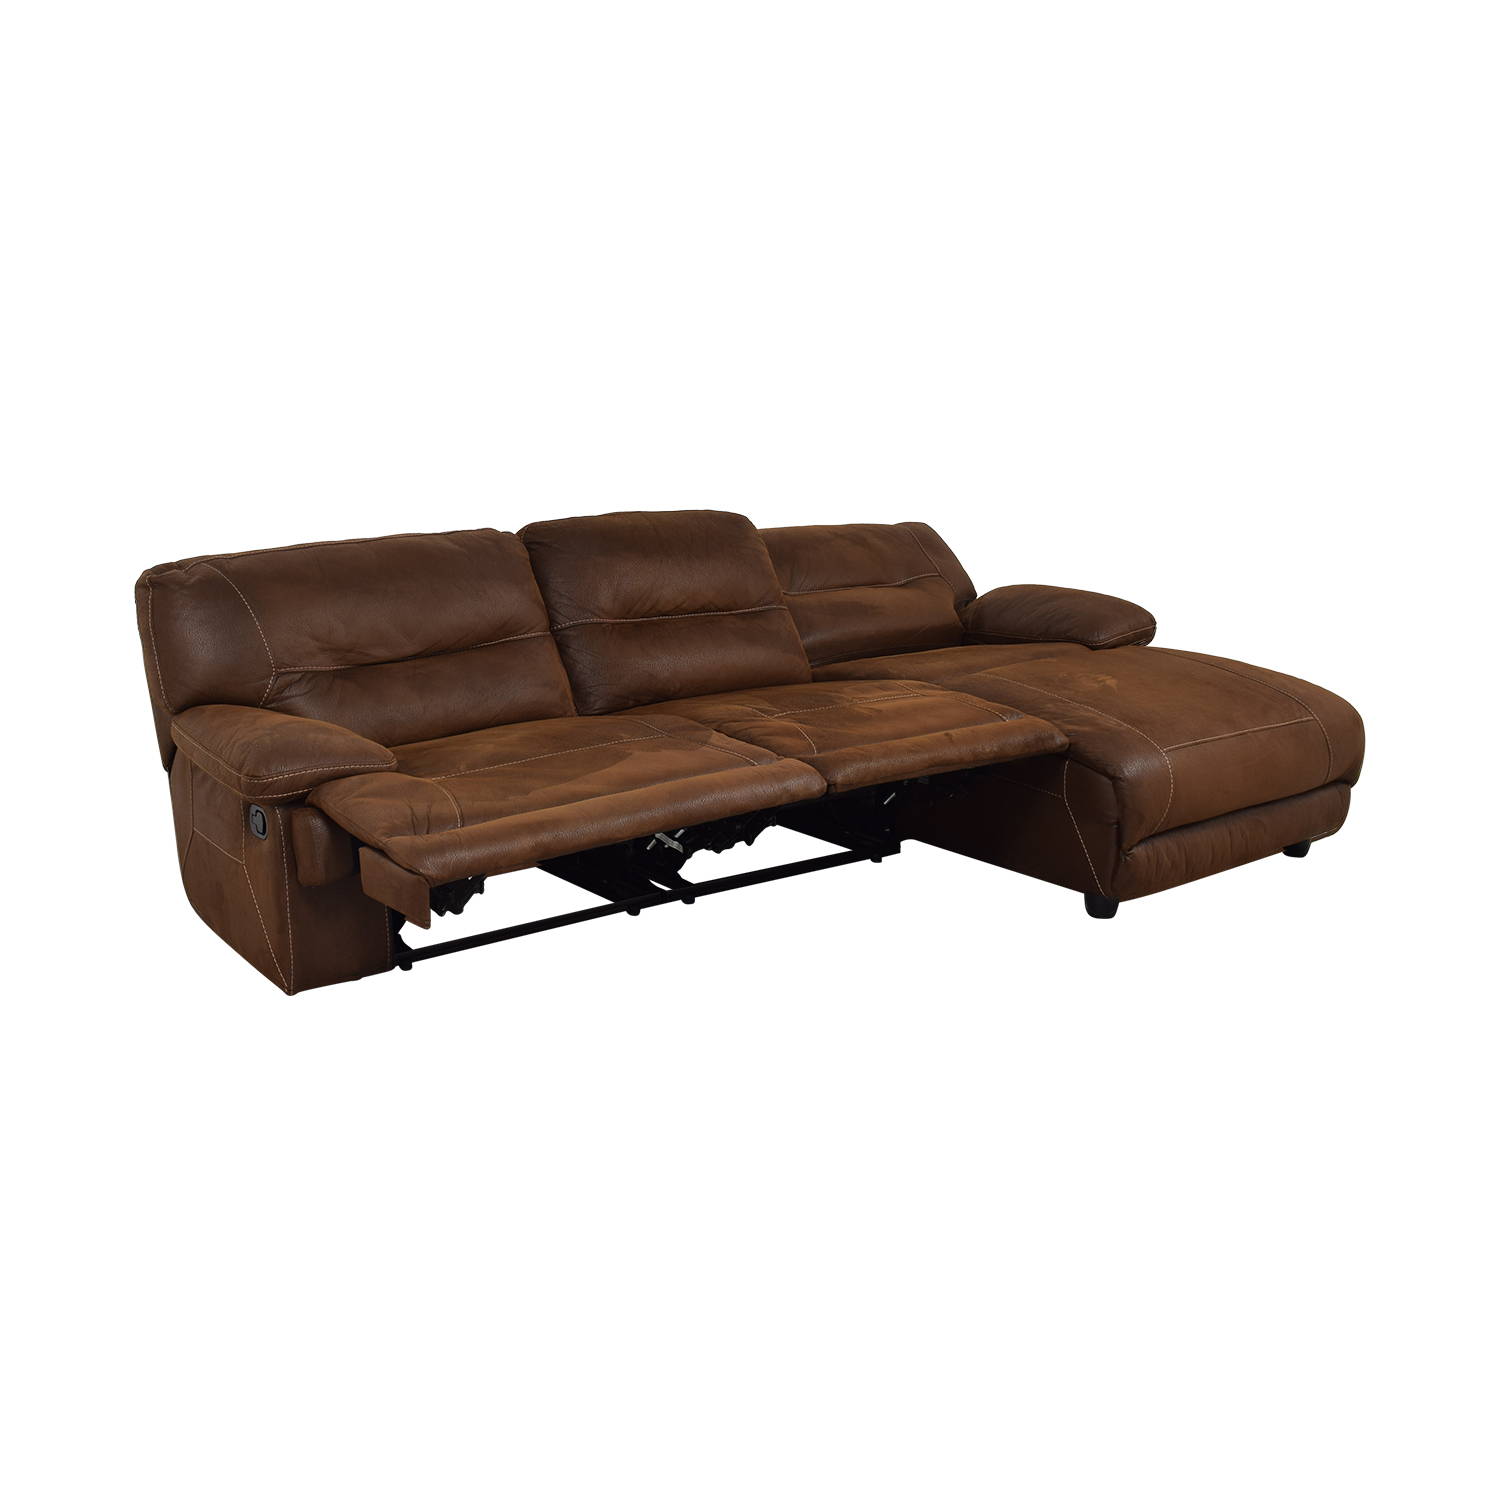 Bob's Discount Furniture Bob's Discount Furniture Brown Tufted Chaise Sectional Recliner for sale